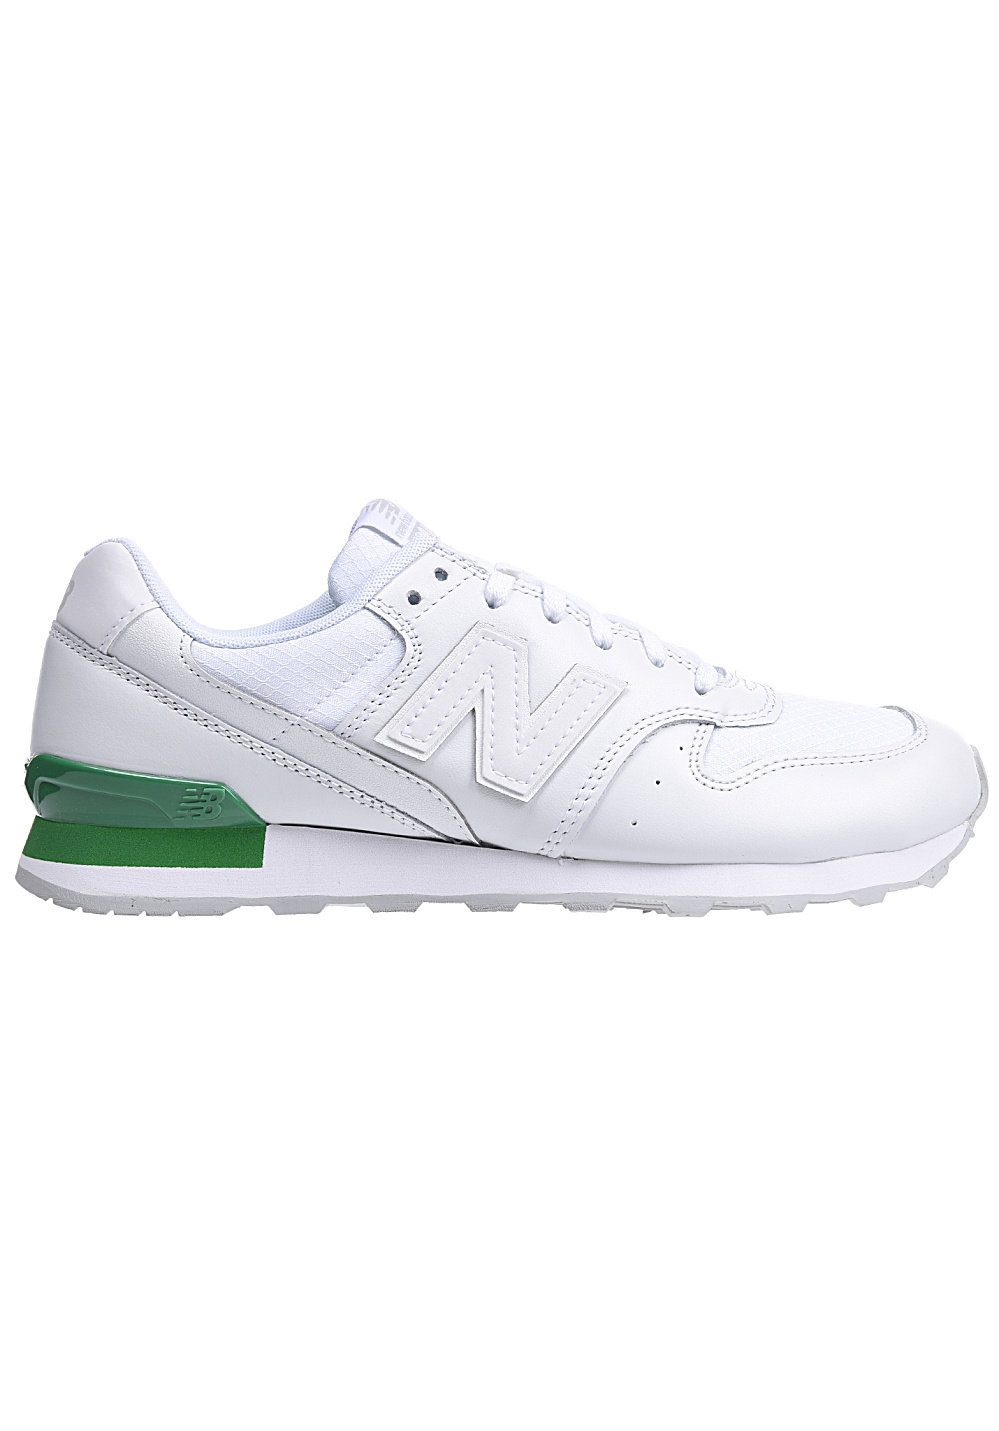 NEW BALANCE WR996 D Sneakers for Women White